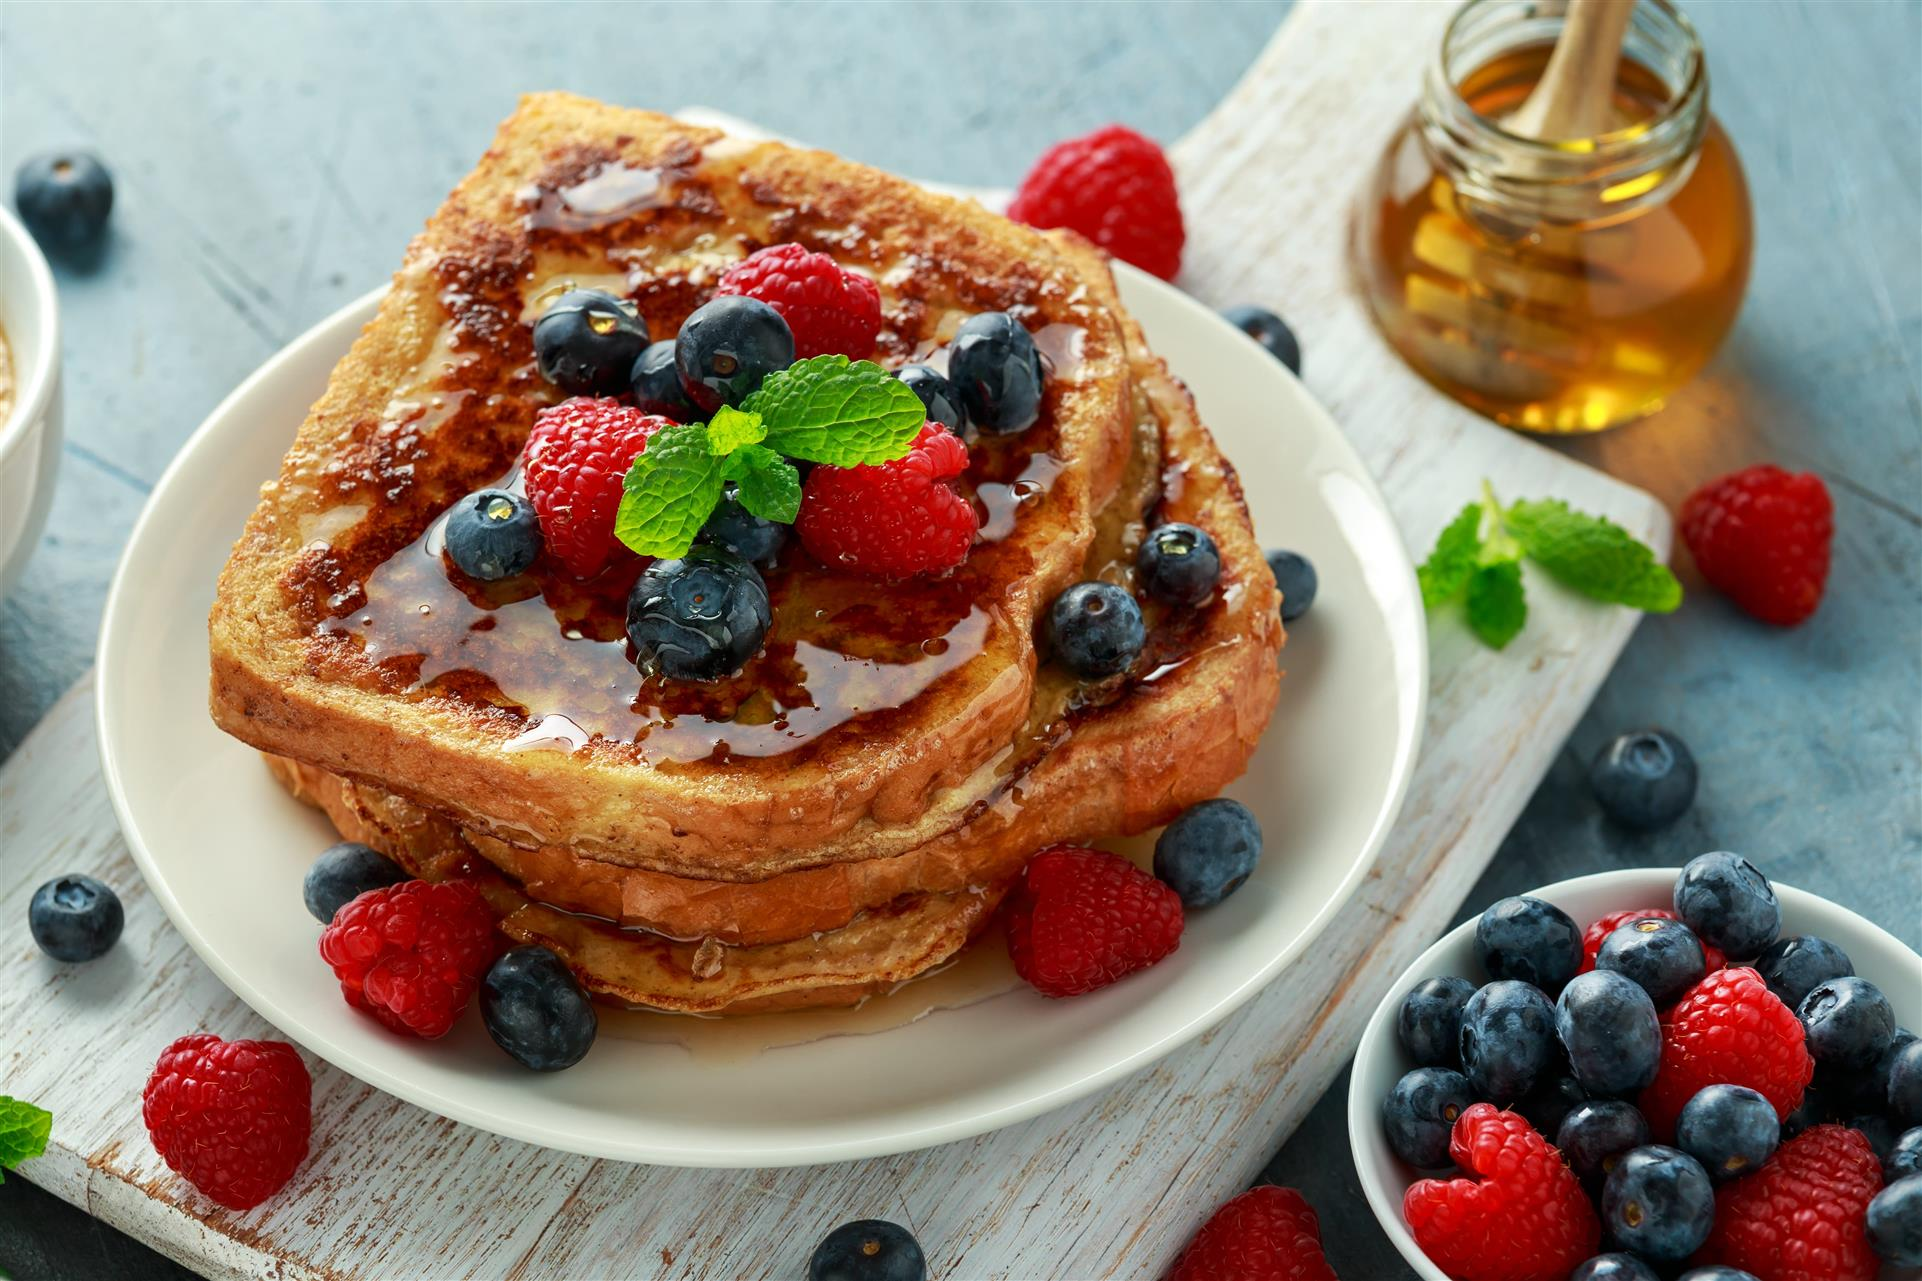 stack of french toast topped with syrup, blueberries and raspberries. syrup, blueberries and raspberries are on the side.